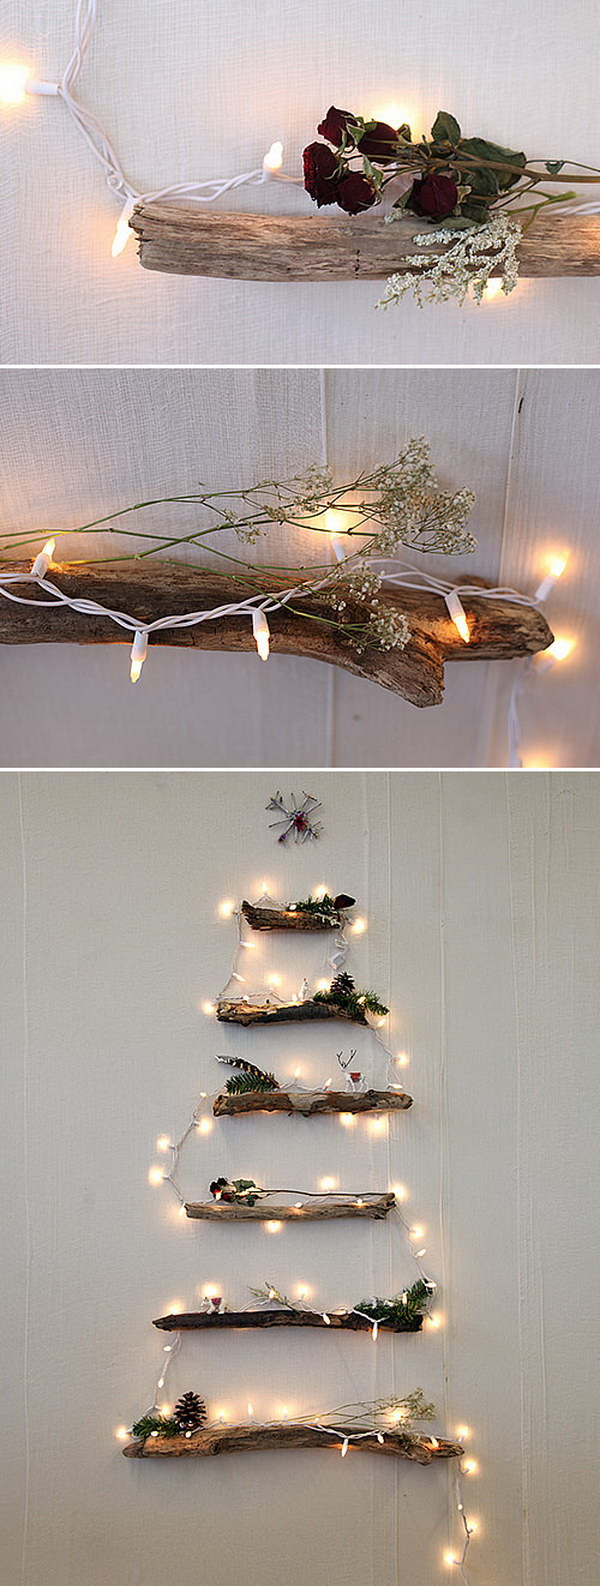 20 Festive String and Fairy Light Decoration Ideas for